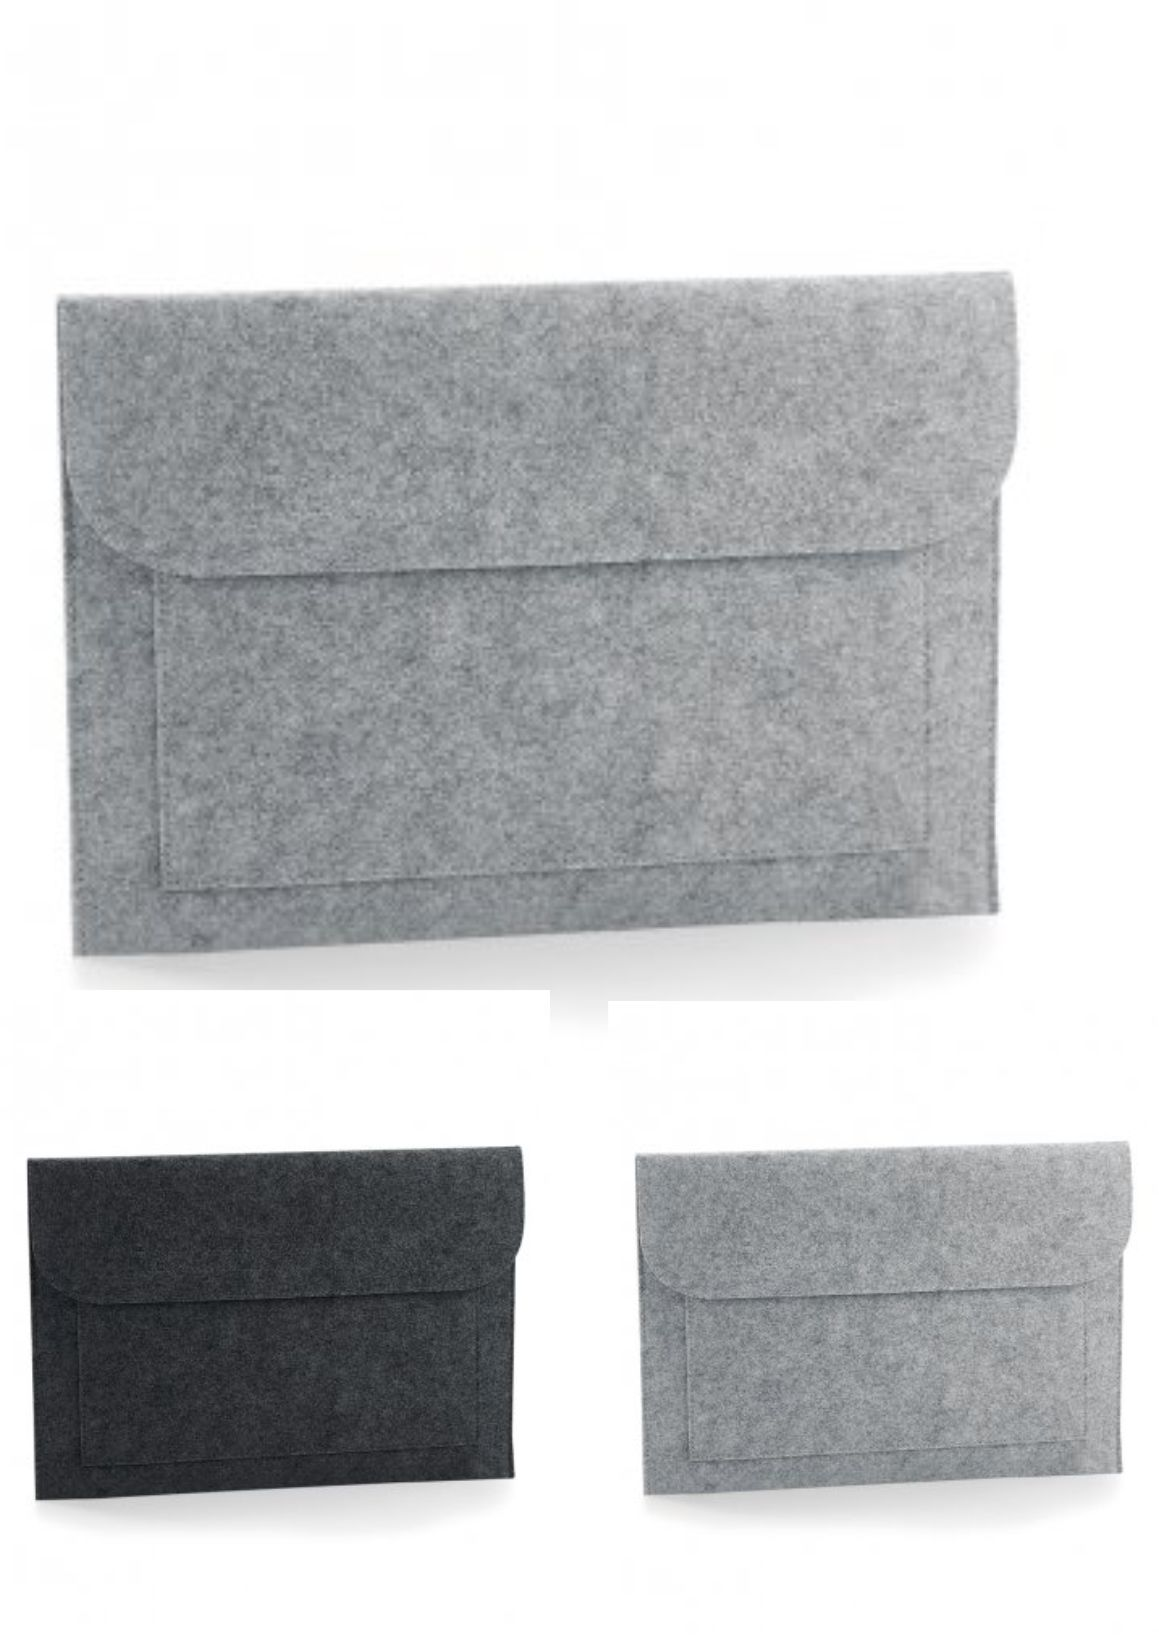 Bagbase BG726 Felt Laptop/document Slip